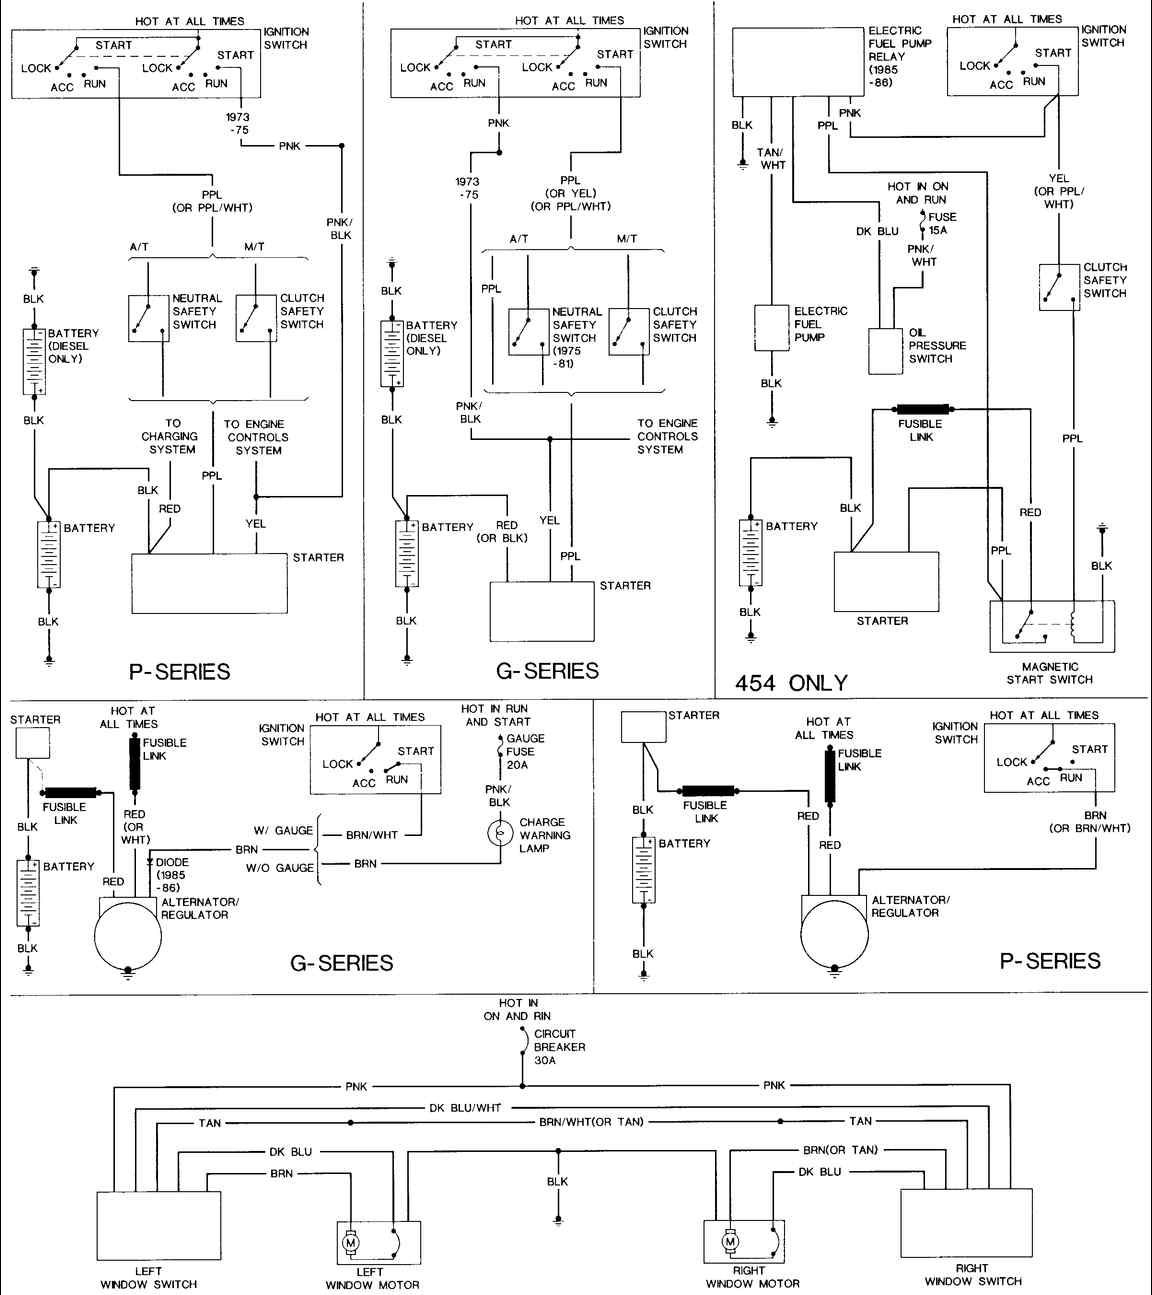 0c73623a181dc376dbb4777e2029d285 85 chevy truck wiring diagram 85 chevy van the steering column 1996 GMC Vandura at gsmportal.co